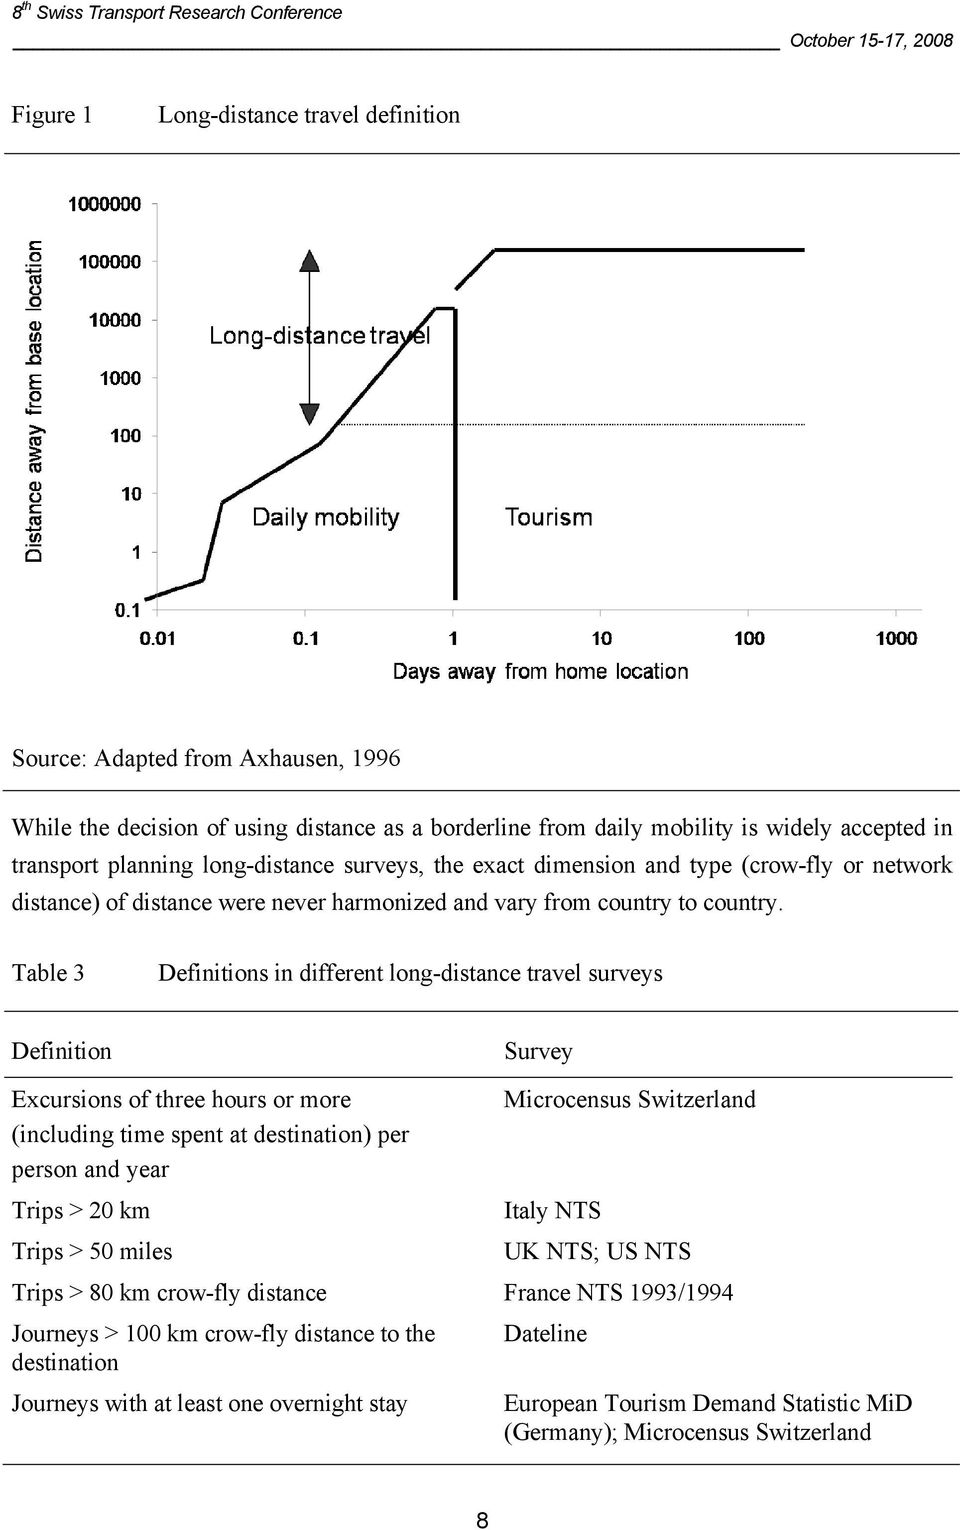 Table 3 Definitions in different long-distance travel surveys Definition Survey Excursions of three hours or more (including time spent at destination) per person and year Microcensus Switzerland